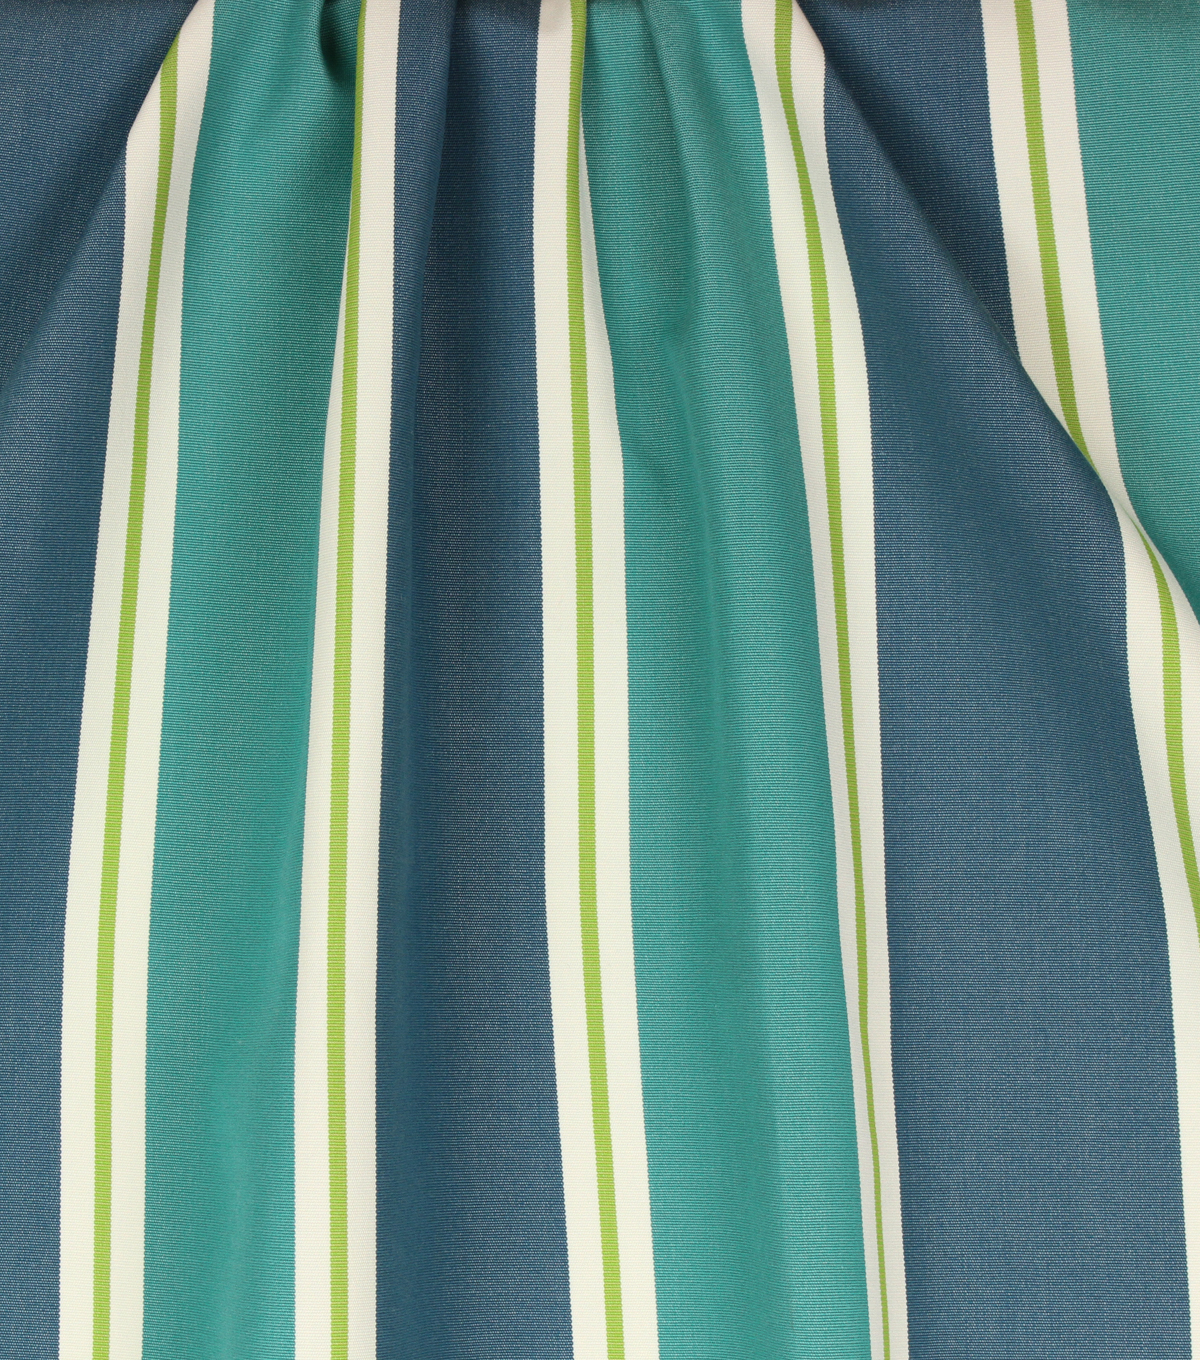 Optimum Performance Acrylic Fabric 54\u0027\u0027-Aegean Stripes